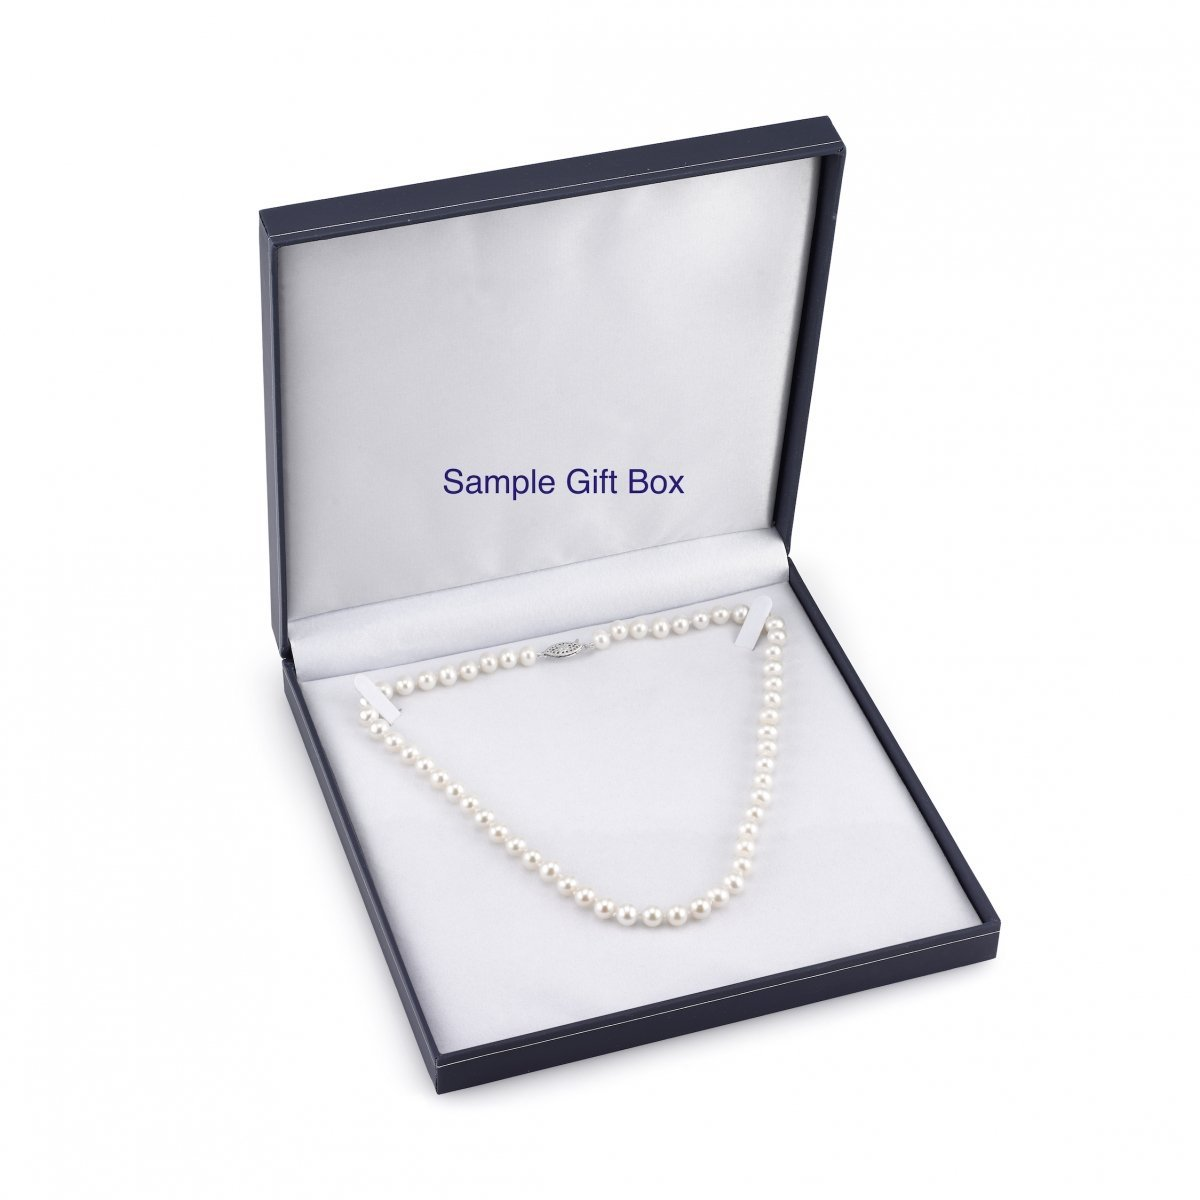 THE PEARL SOURCE 14K Gold 7.5-8.0mm AAA Quality Round Genuine White Japanese Akoya Saltwater Cultured Pearl Necklace in 24 Matinee Length for Women